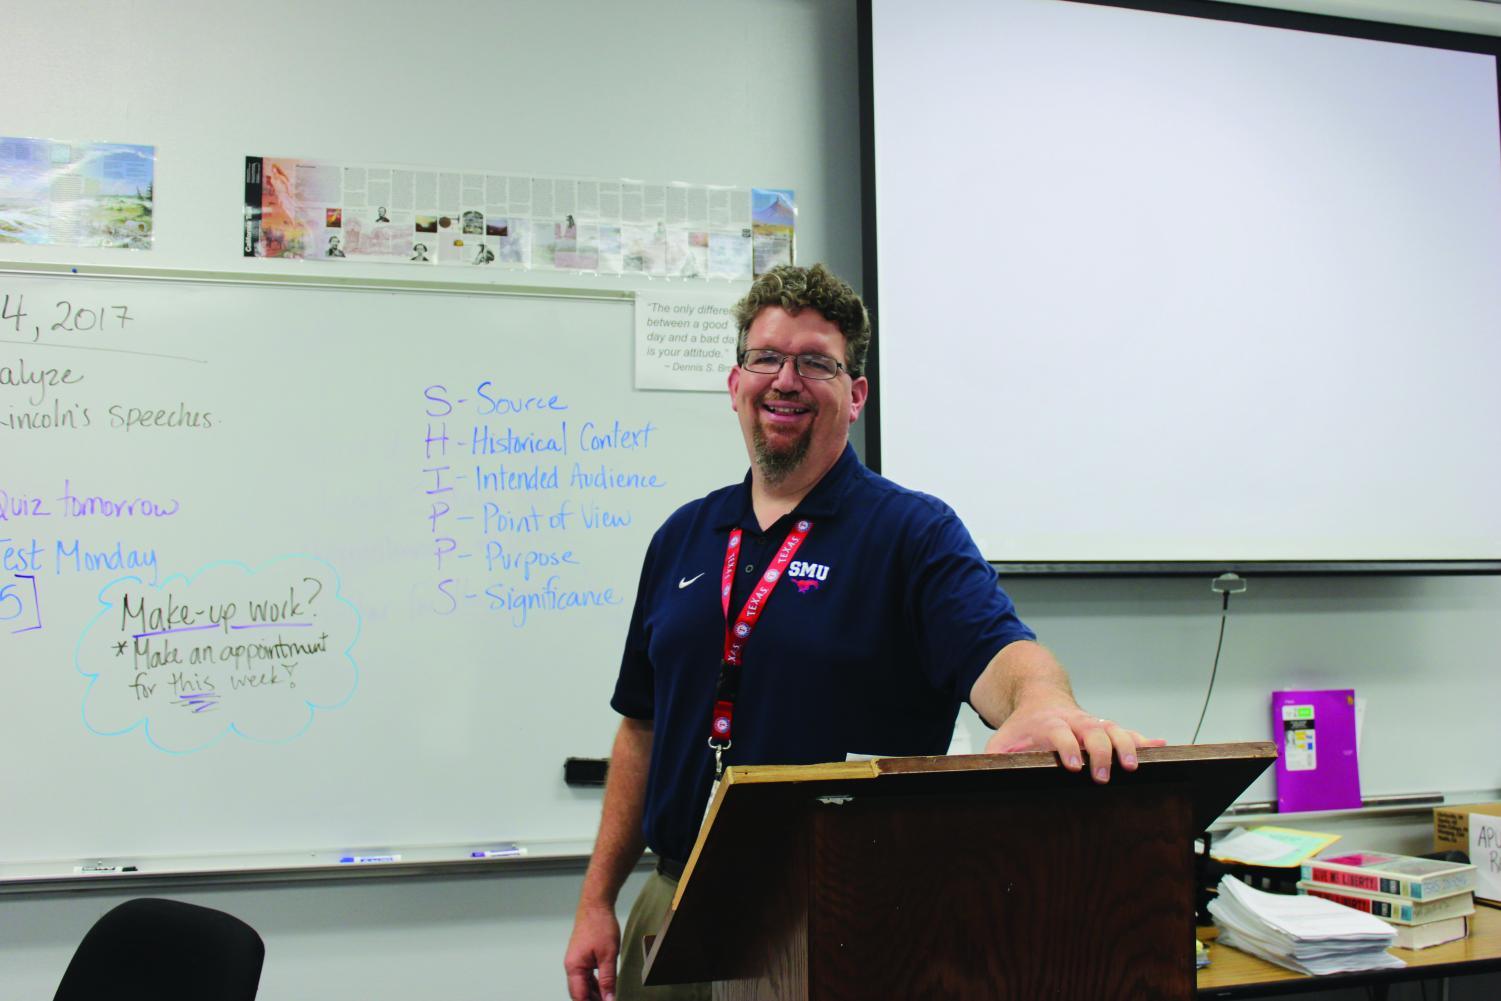 U.S. History teacher Matt Cone, always ready and willing to help students in need whether it be tutoring, a sympathetic ear or a safe ride home.